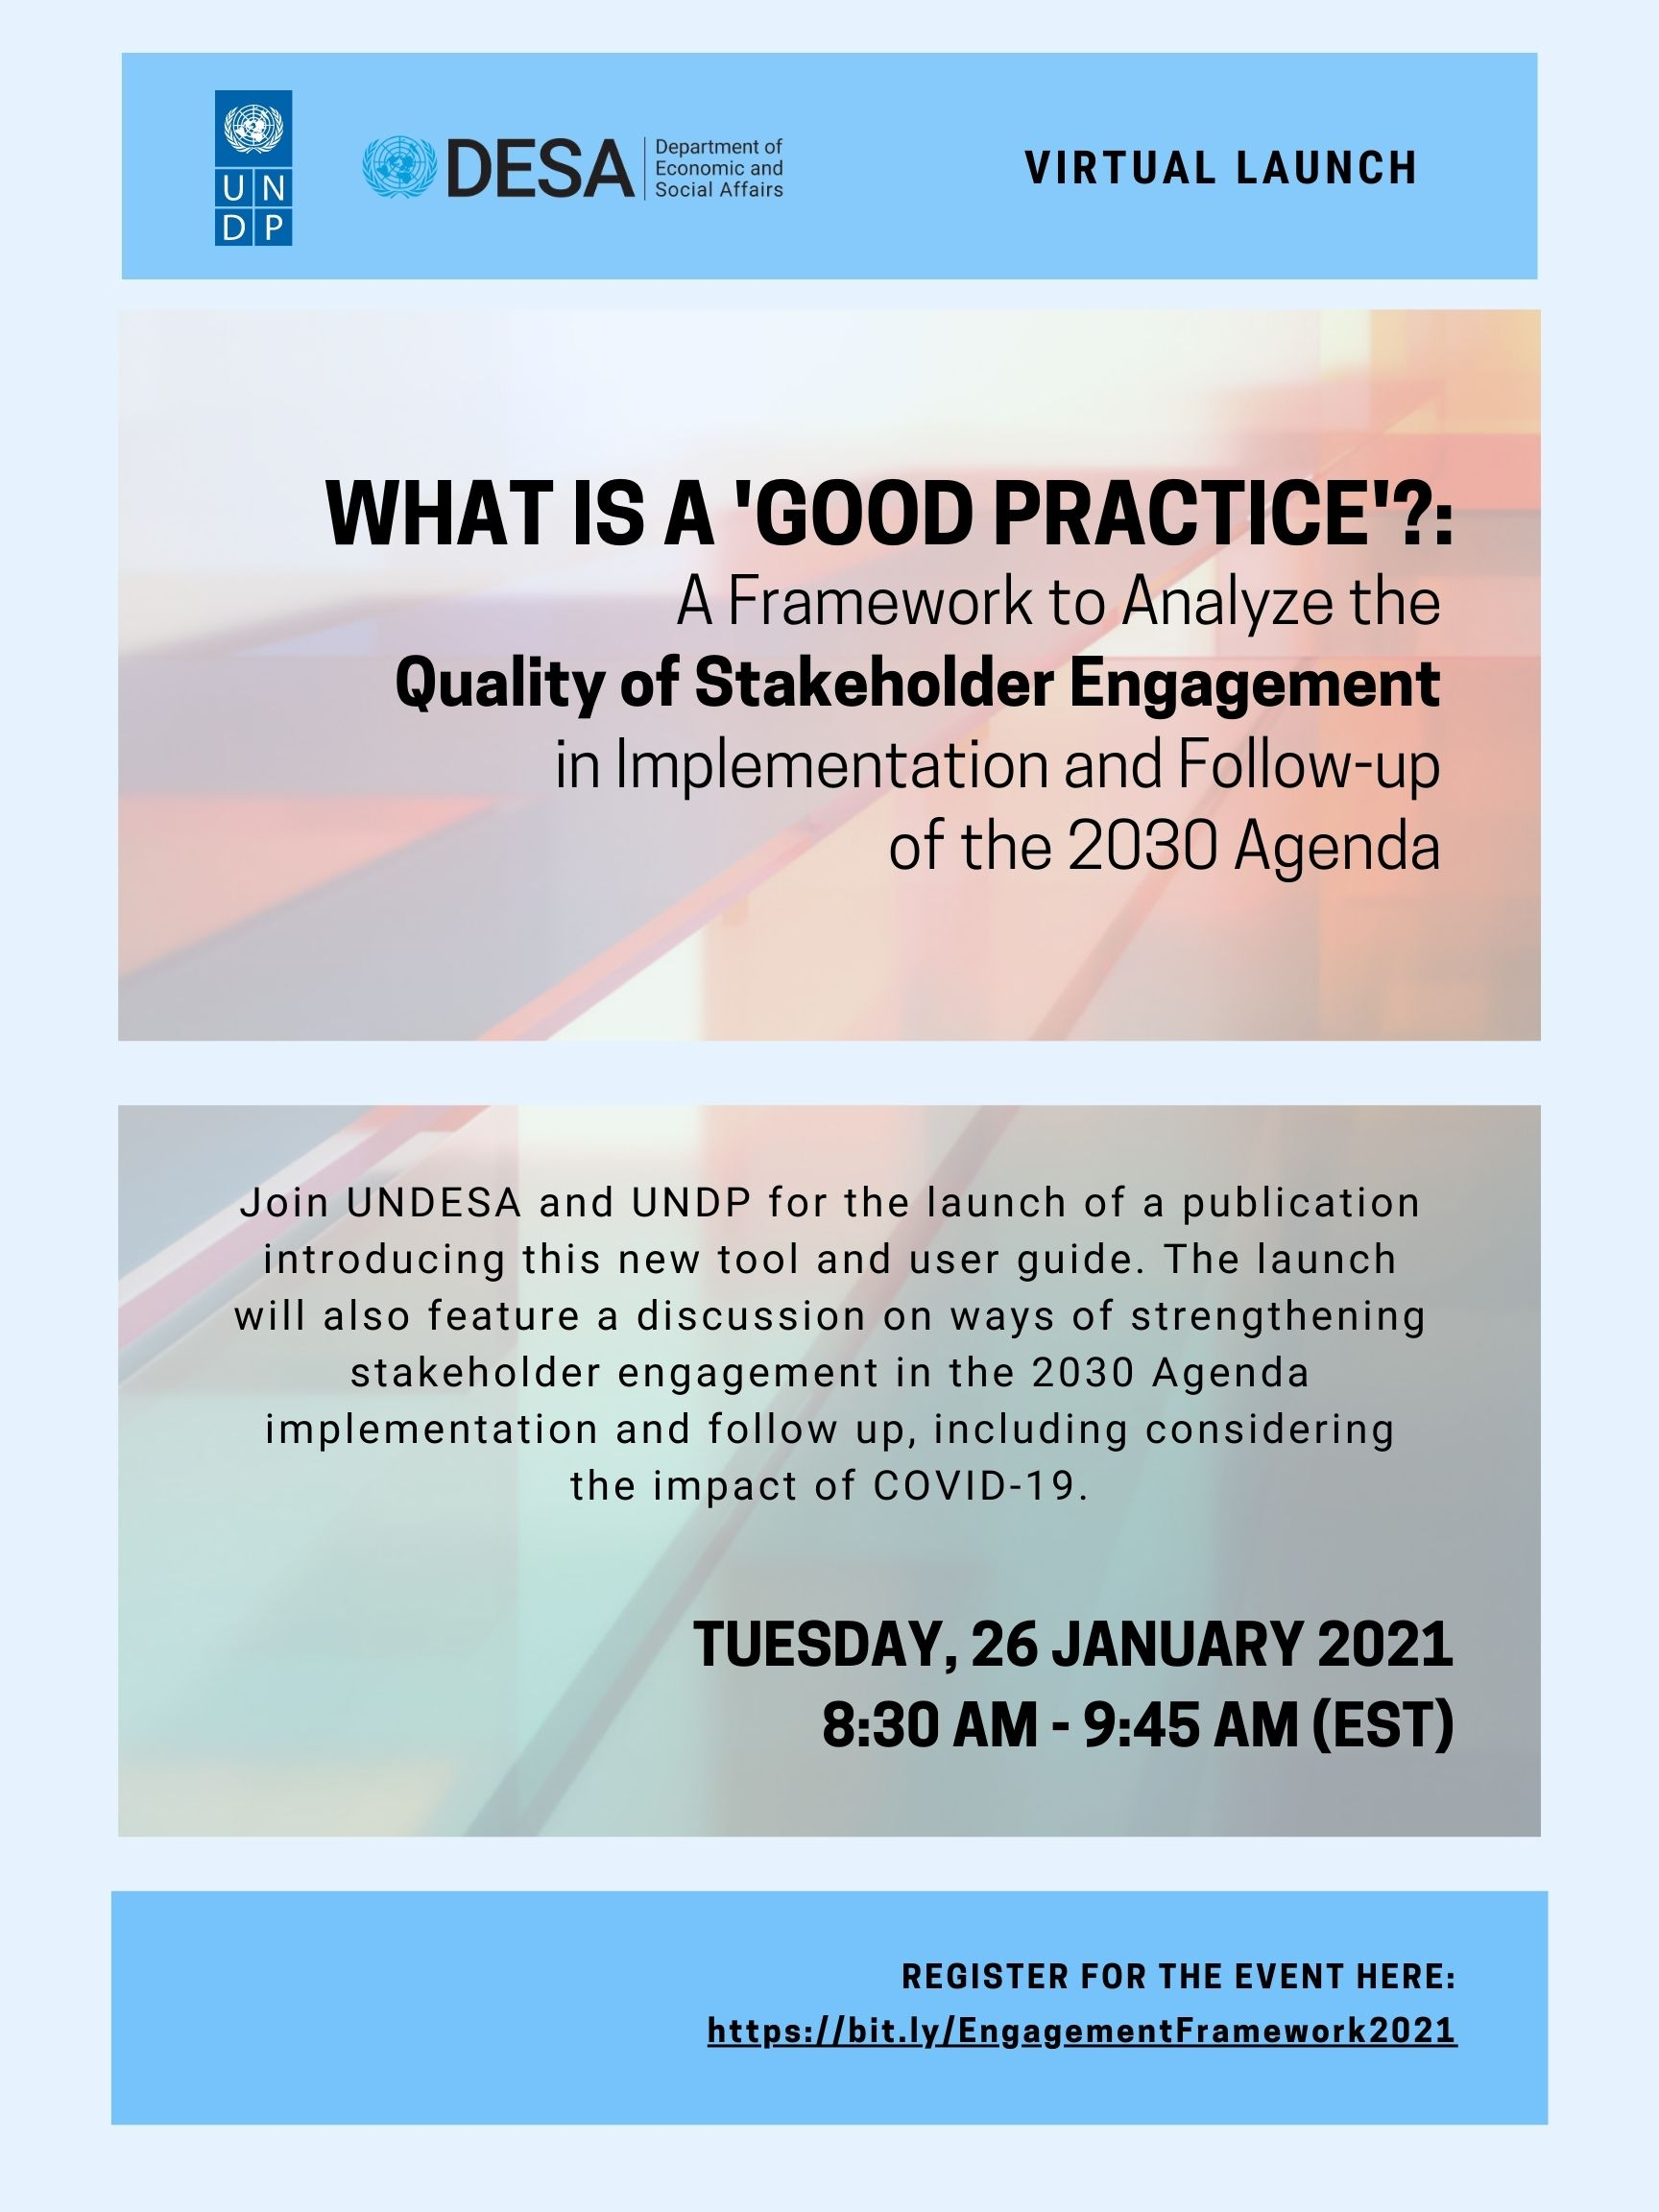 Virtual Launch Event Flyer - Join us on Tuesday, 26 January, 2021 from 8:30-9:45 AM (EST)